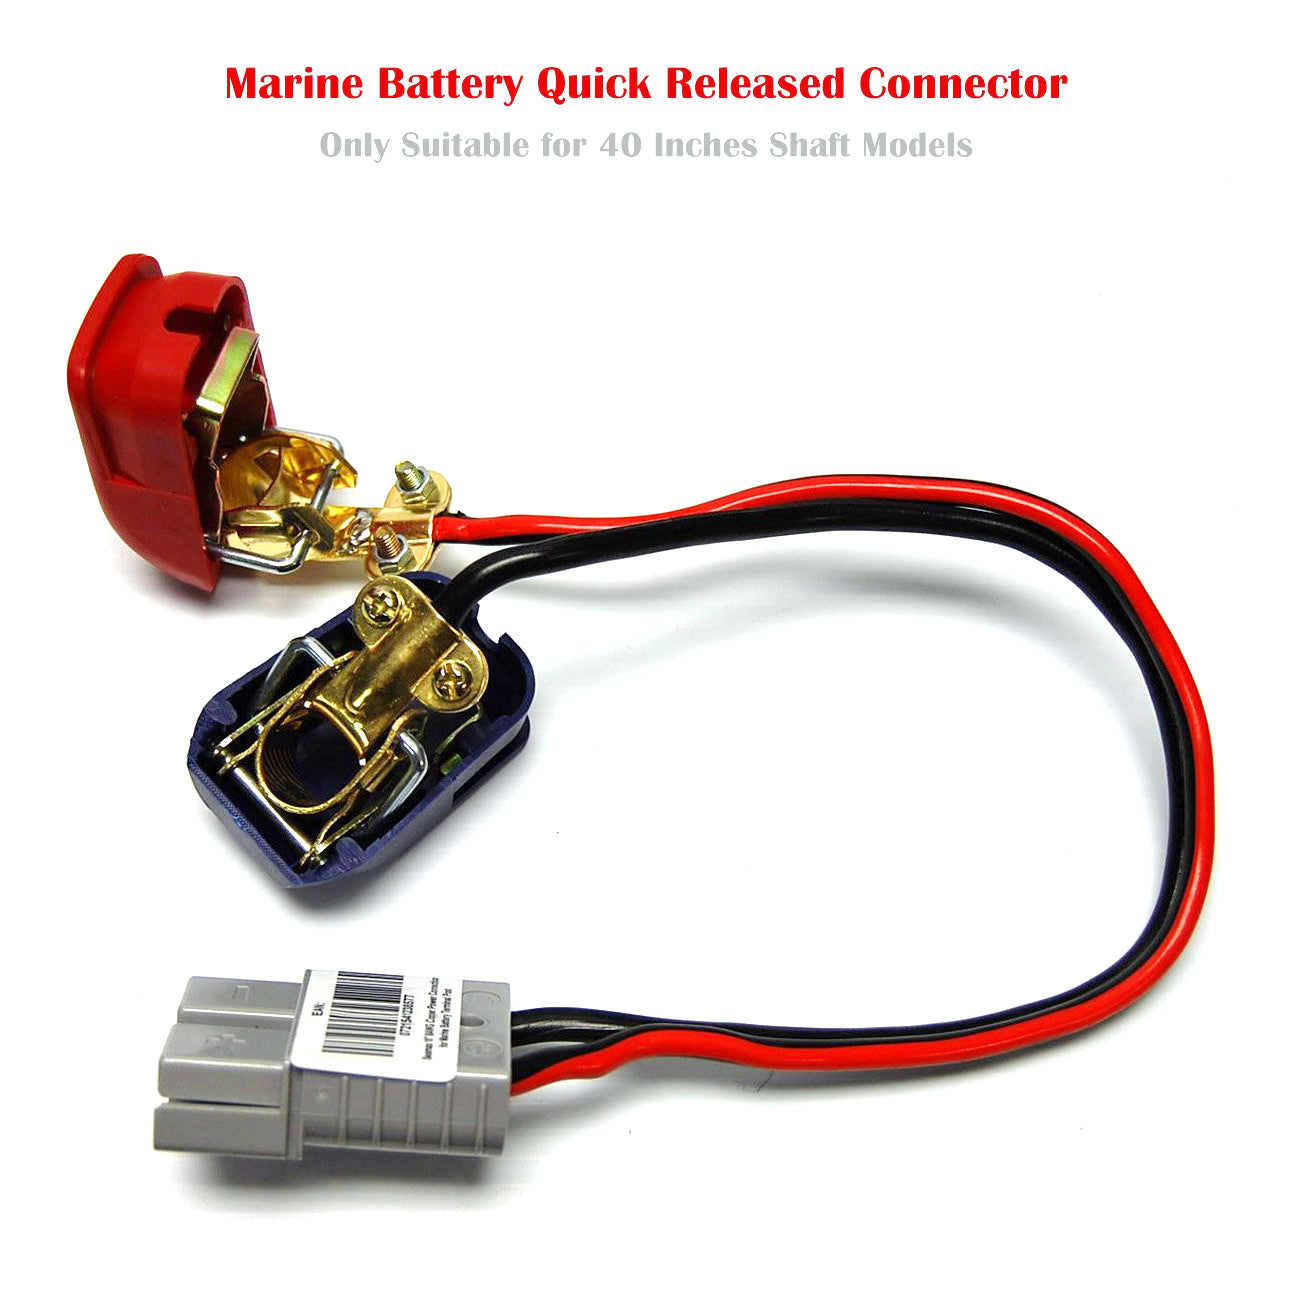 Electric Trolling Motor Seamax Marine 3 Prong Plug Wiring Diagram Quick Released Connector For Battery Terminal Suitable 2018 40